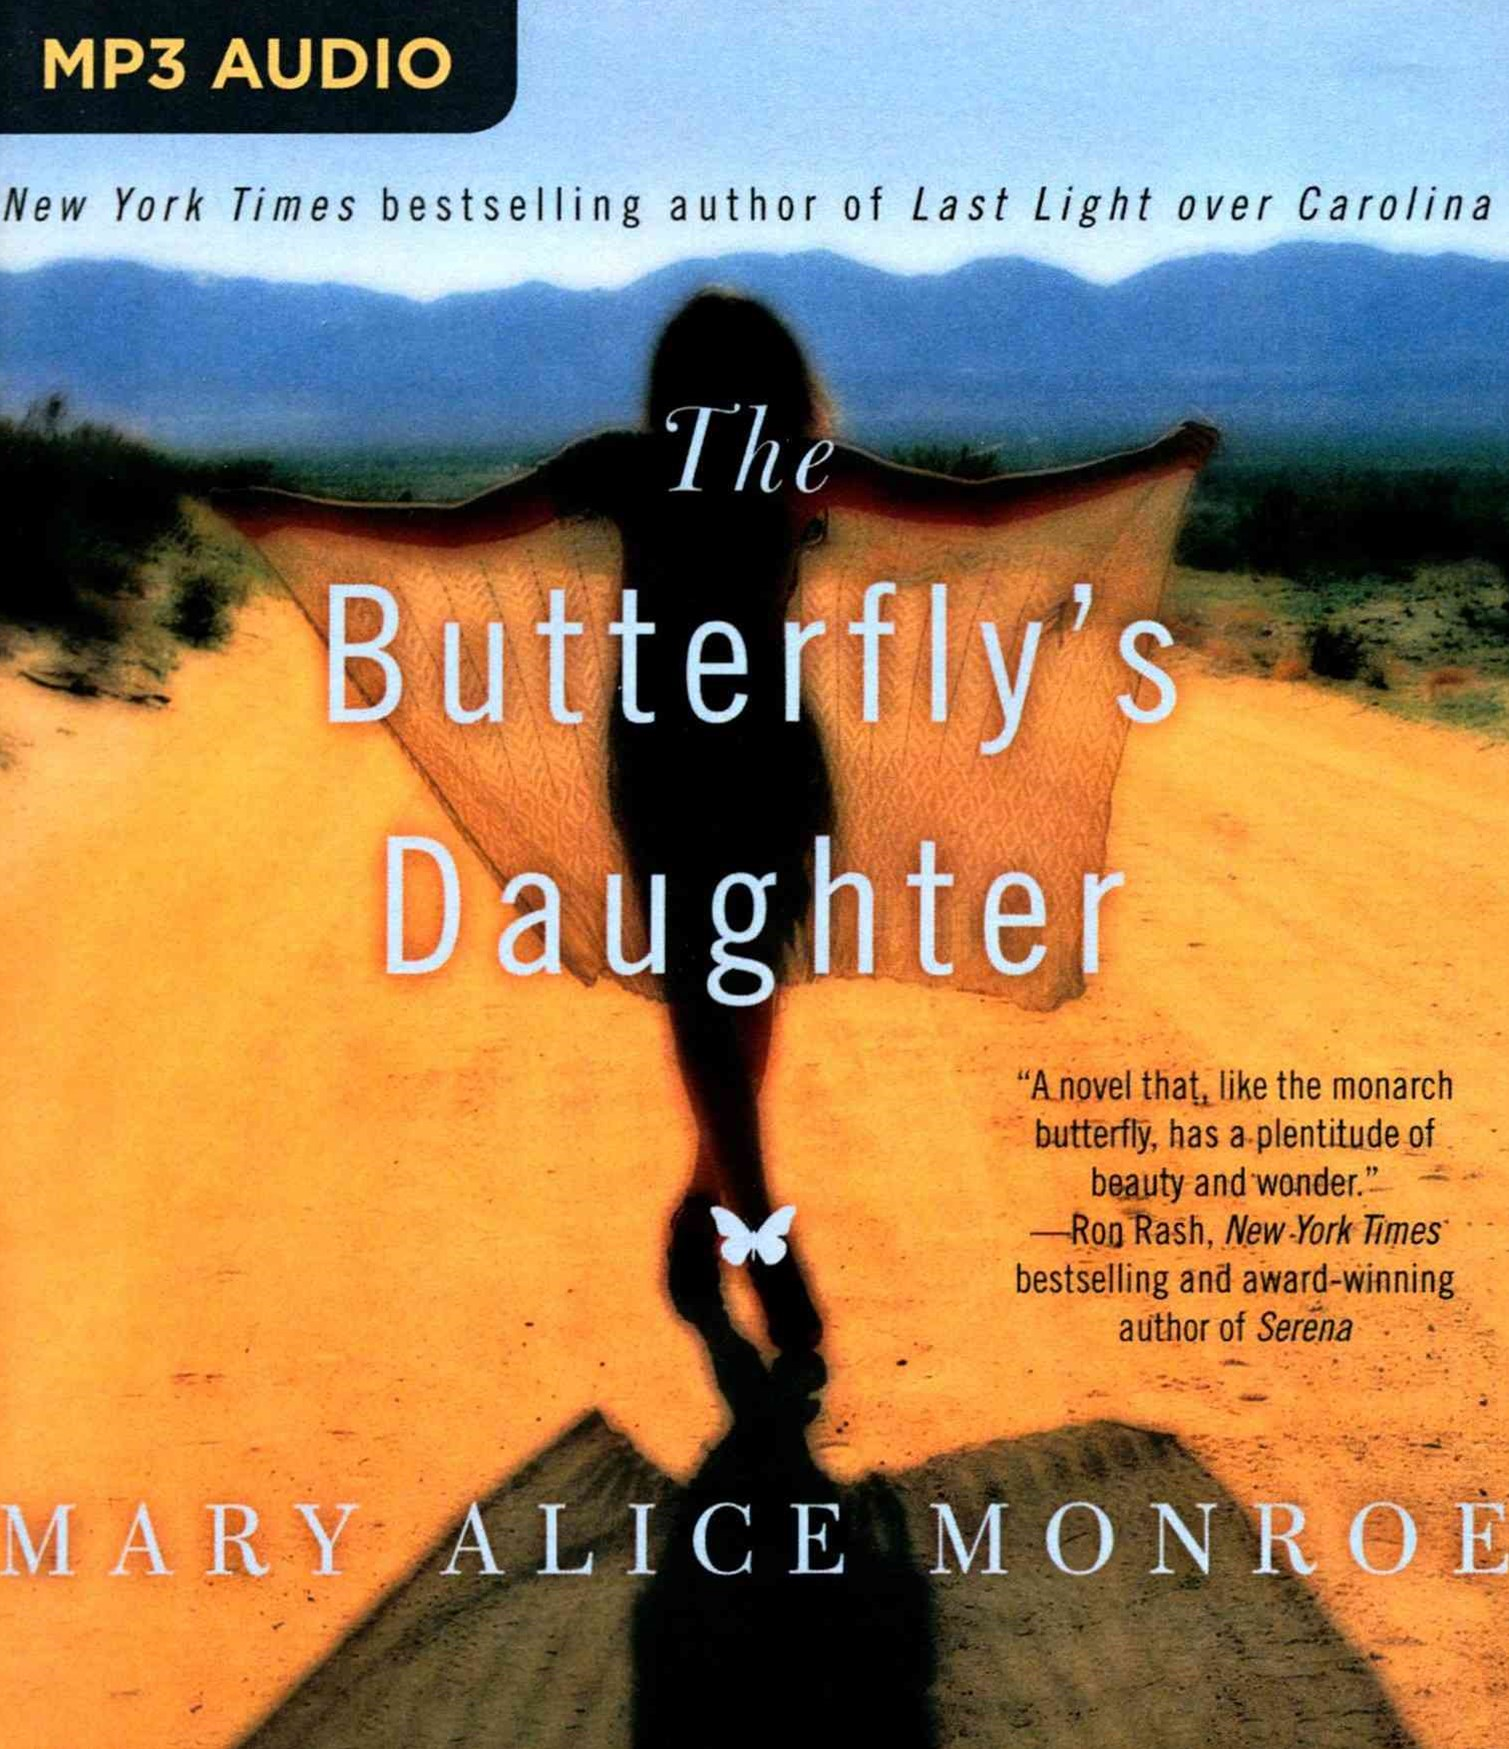 The Butterfly's Daughter